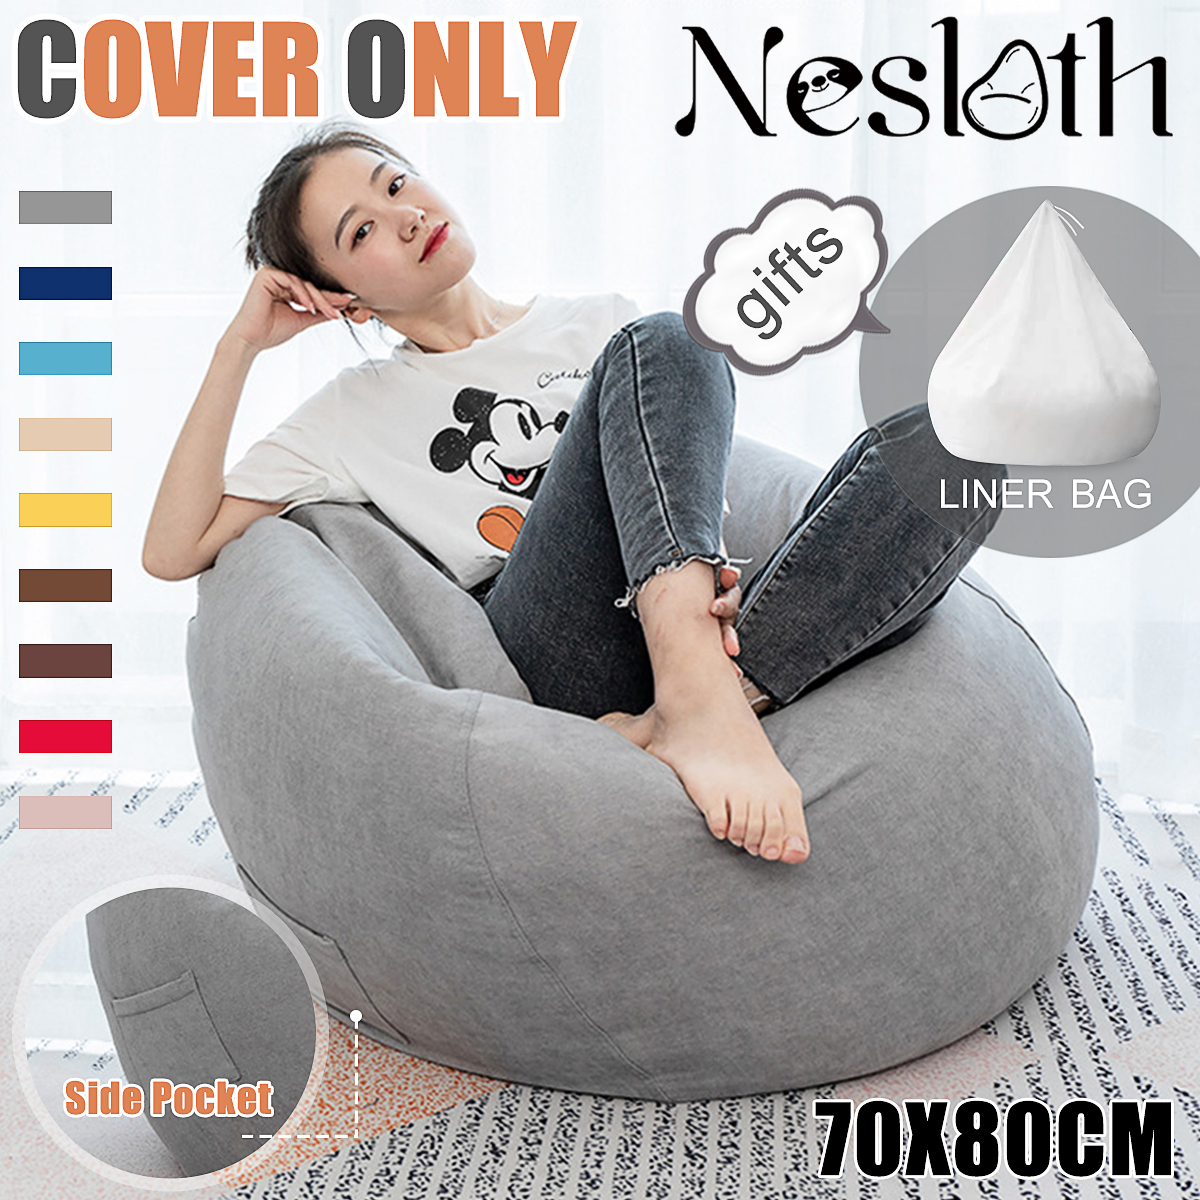 2Pcs Lazy BeanBag Sofas Cover+Inner Liner Chairs Without Filler Velvet Lounger Seat Bean Bag Pouf Puff Couch Tatami Living Room